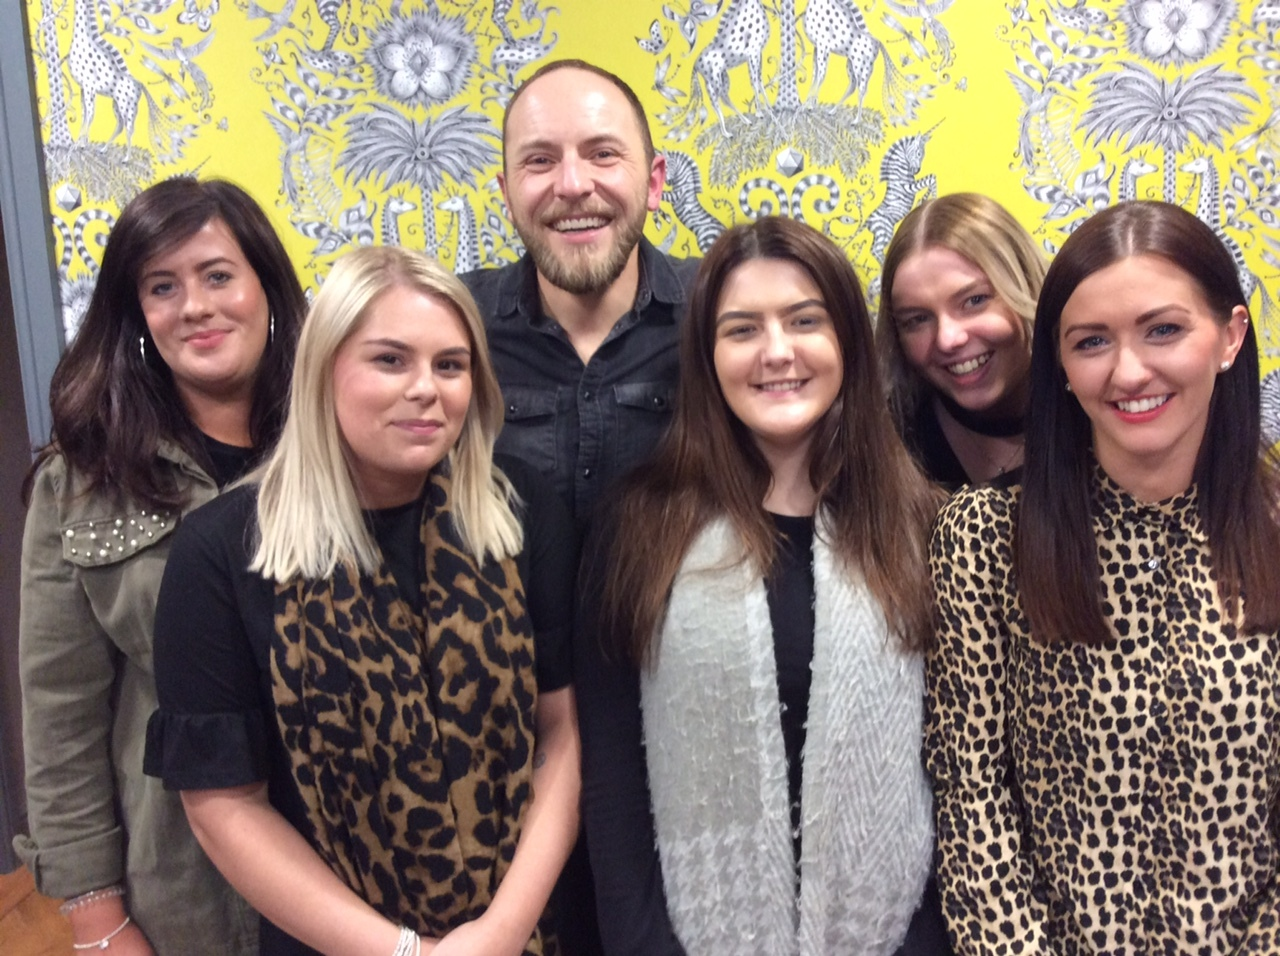 The Shine team from Stokesley: (left to right) Laura Atkinson, Leah Weatherill, Stephen MacVean, Georgia Tweddell, Yazmine Walker, and Charlie Dixon.